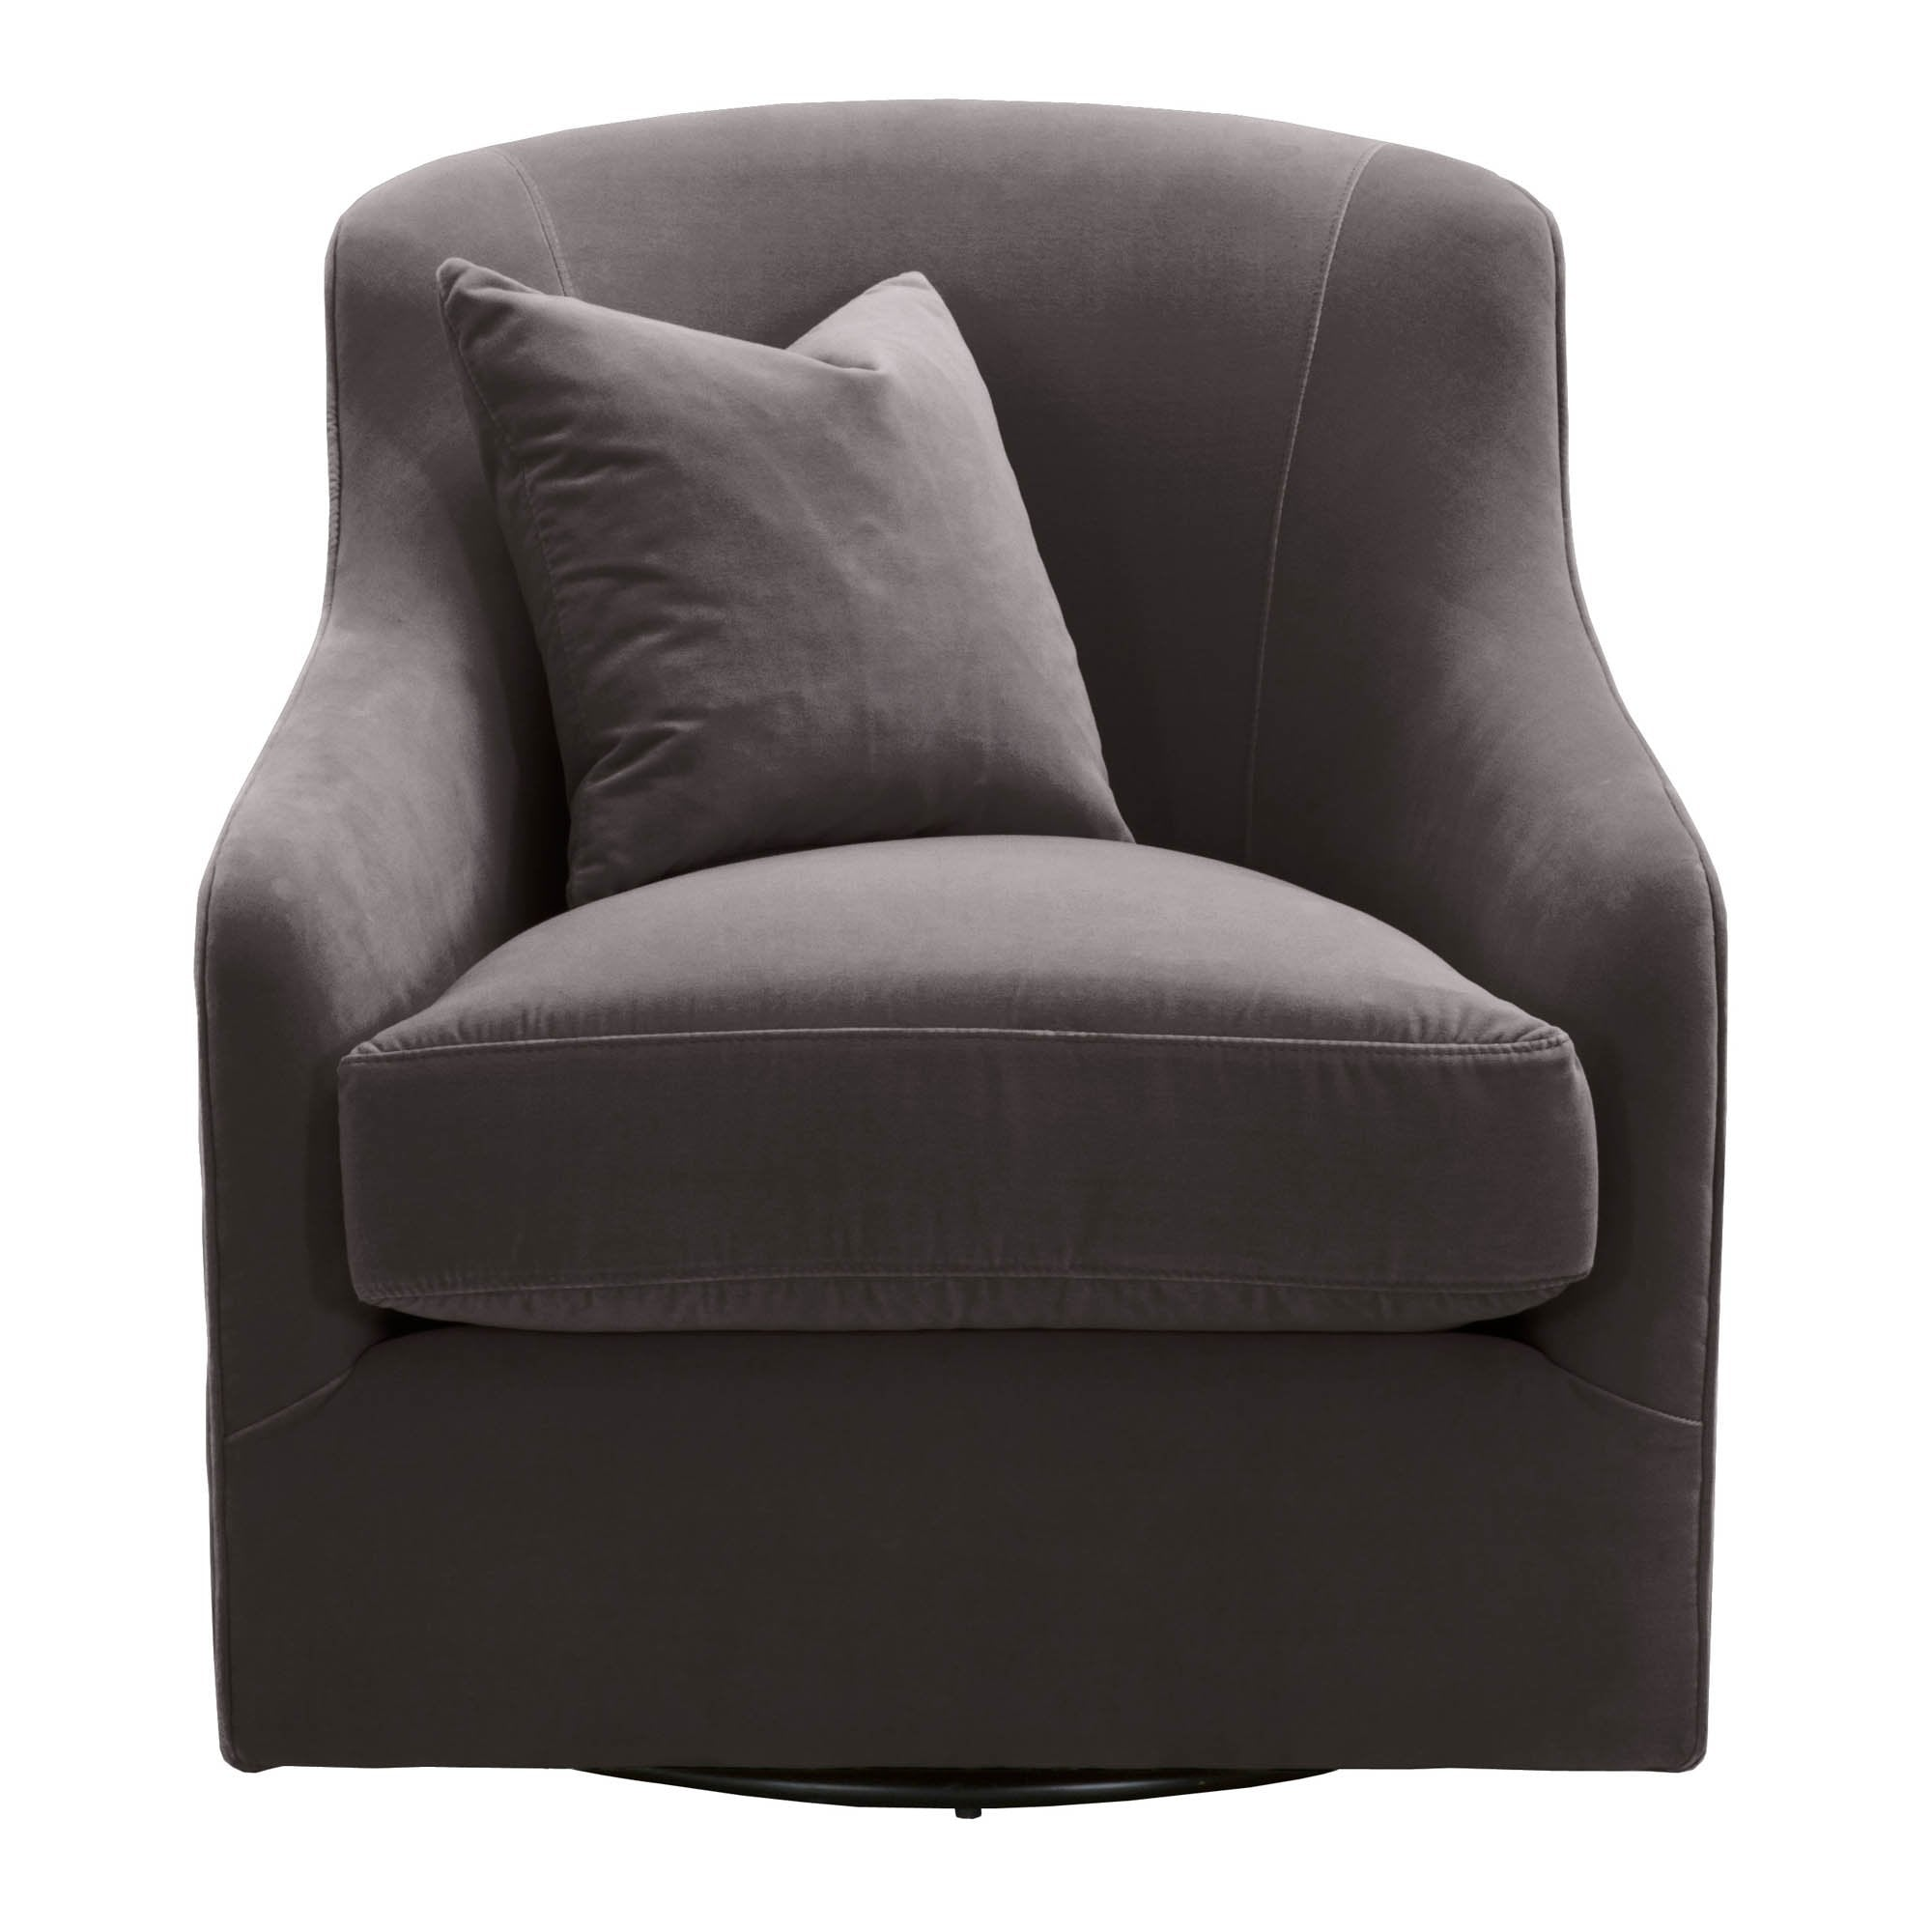 Mona Swivel Club Chair in 10.9% Polyester